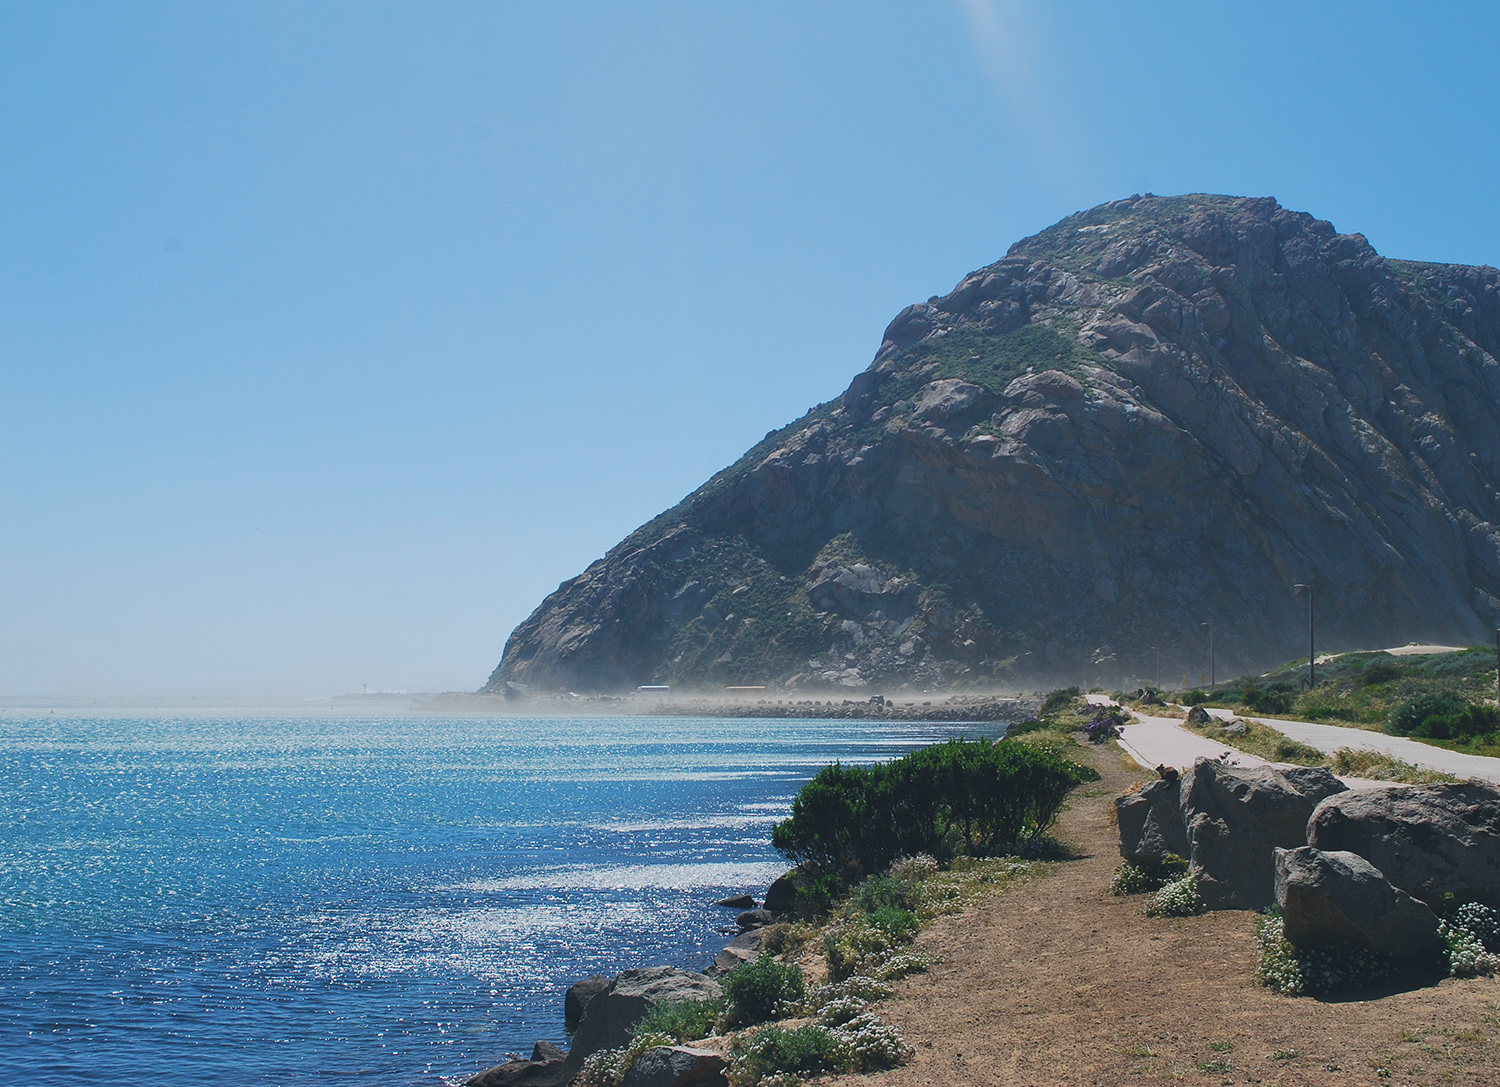 Close up of Morro Rock